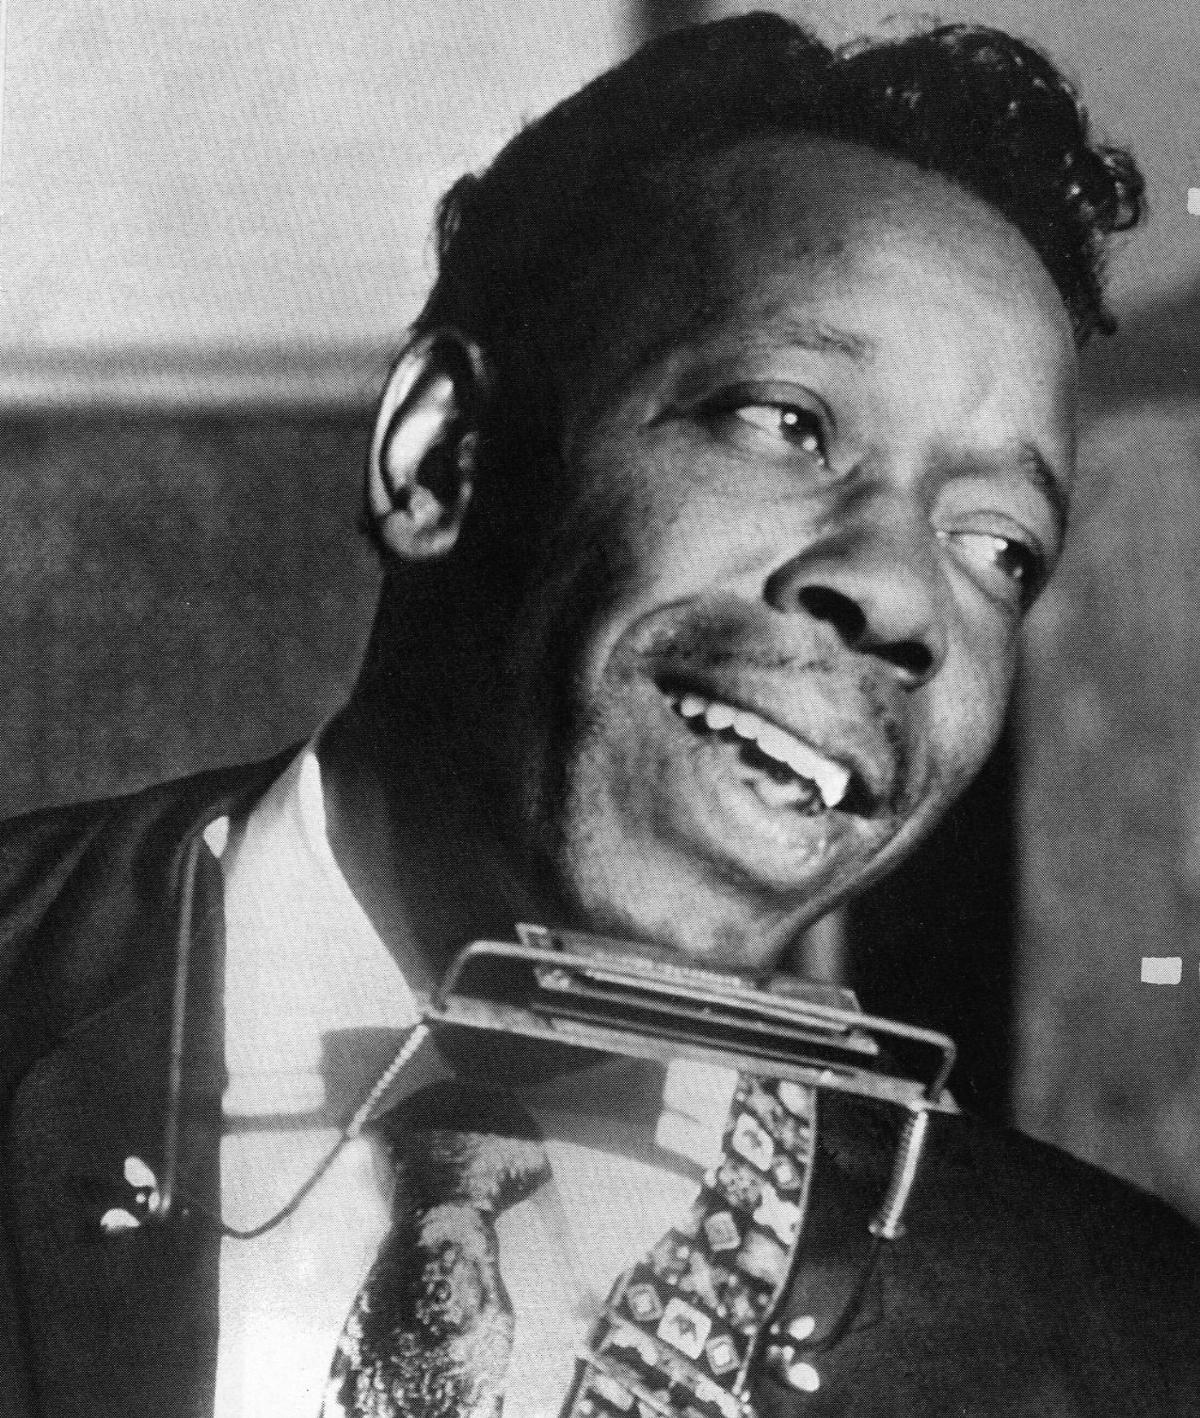 Slim Harpo file for Red